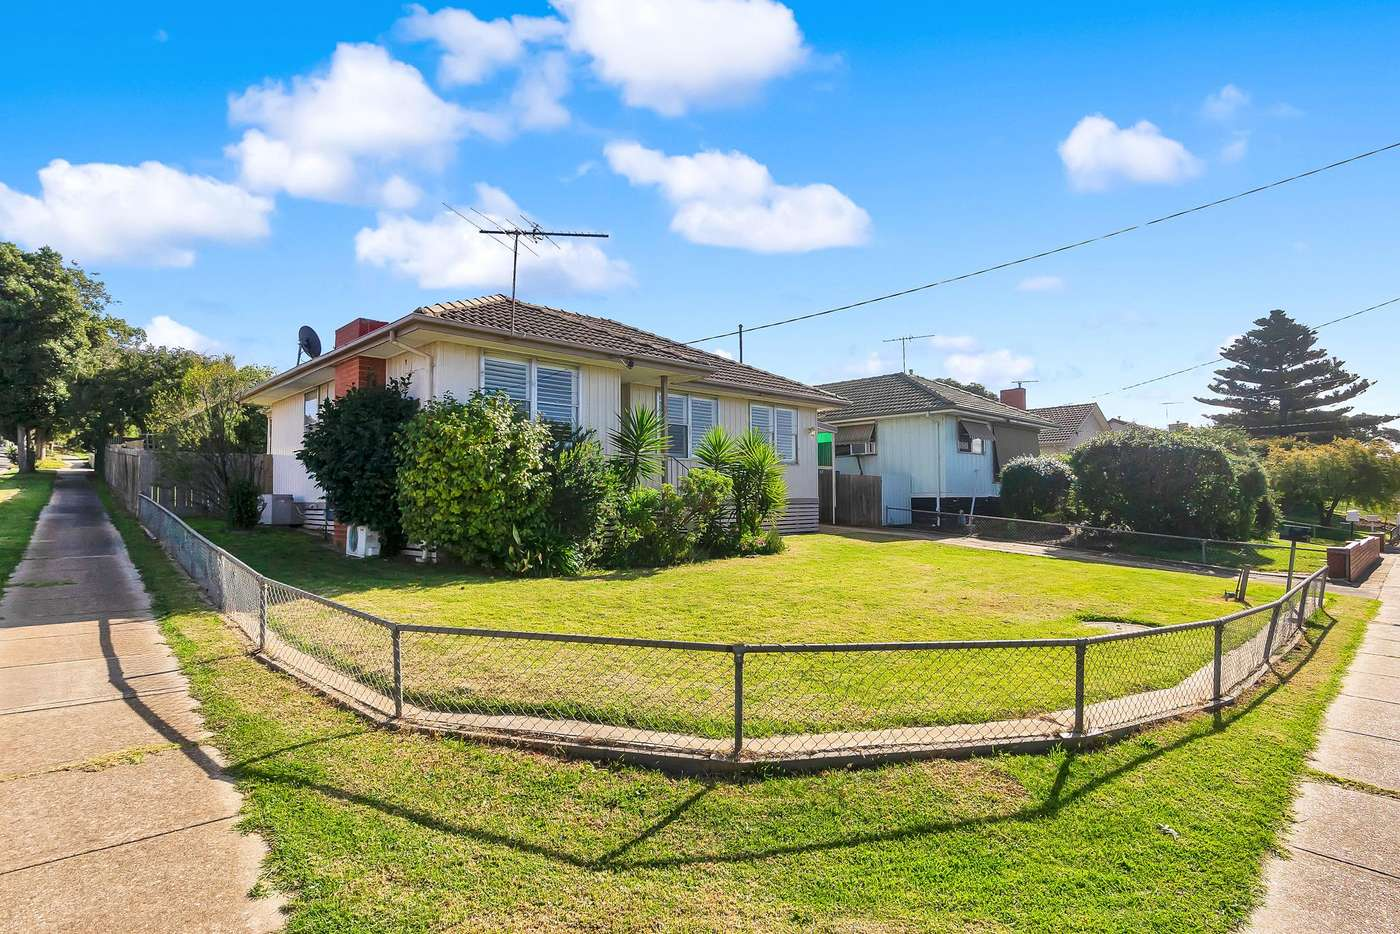 Main view of Homely house listing, 7 Lidgett Street, Bacchus Marsh VIC 3340